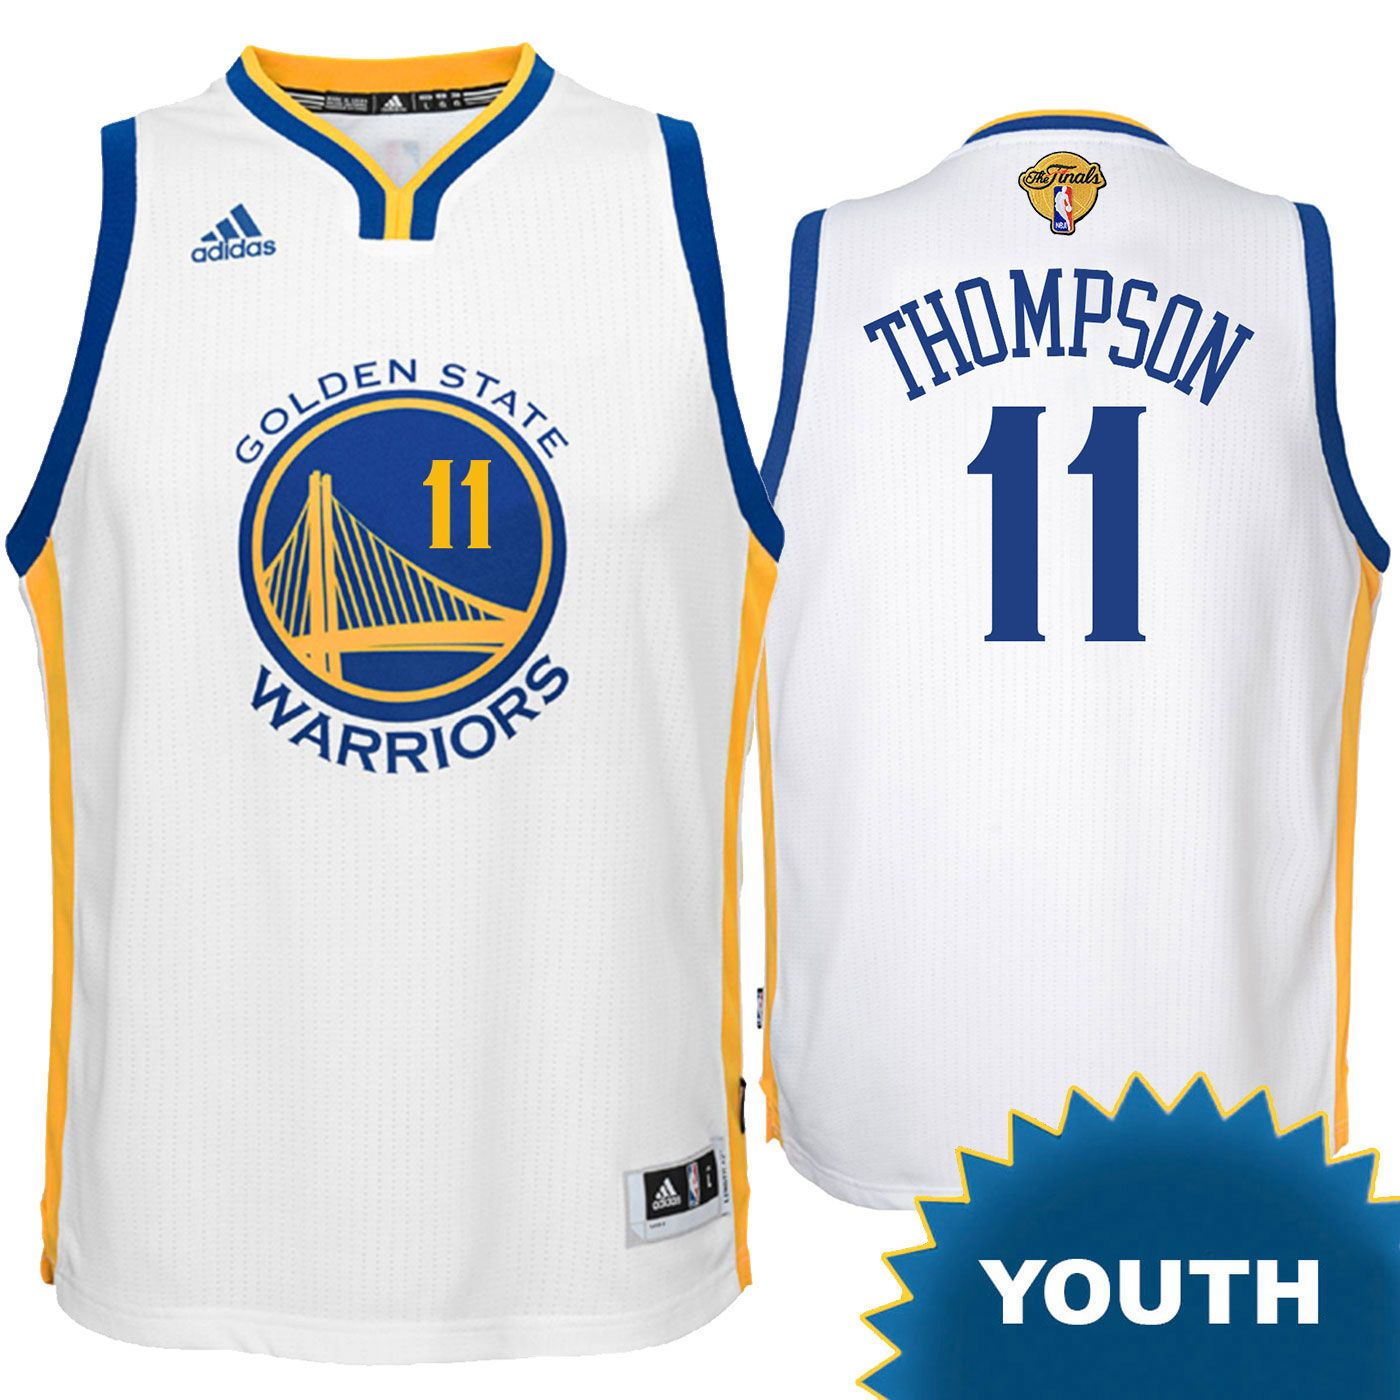 online store 2907b 347d7 Klay Thompson Youth Jersey: adidas 'The Finals' White ...